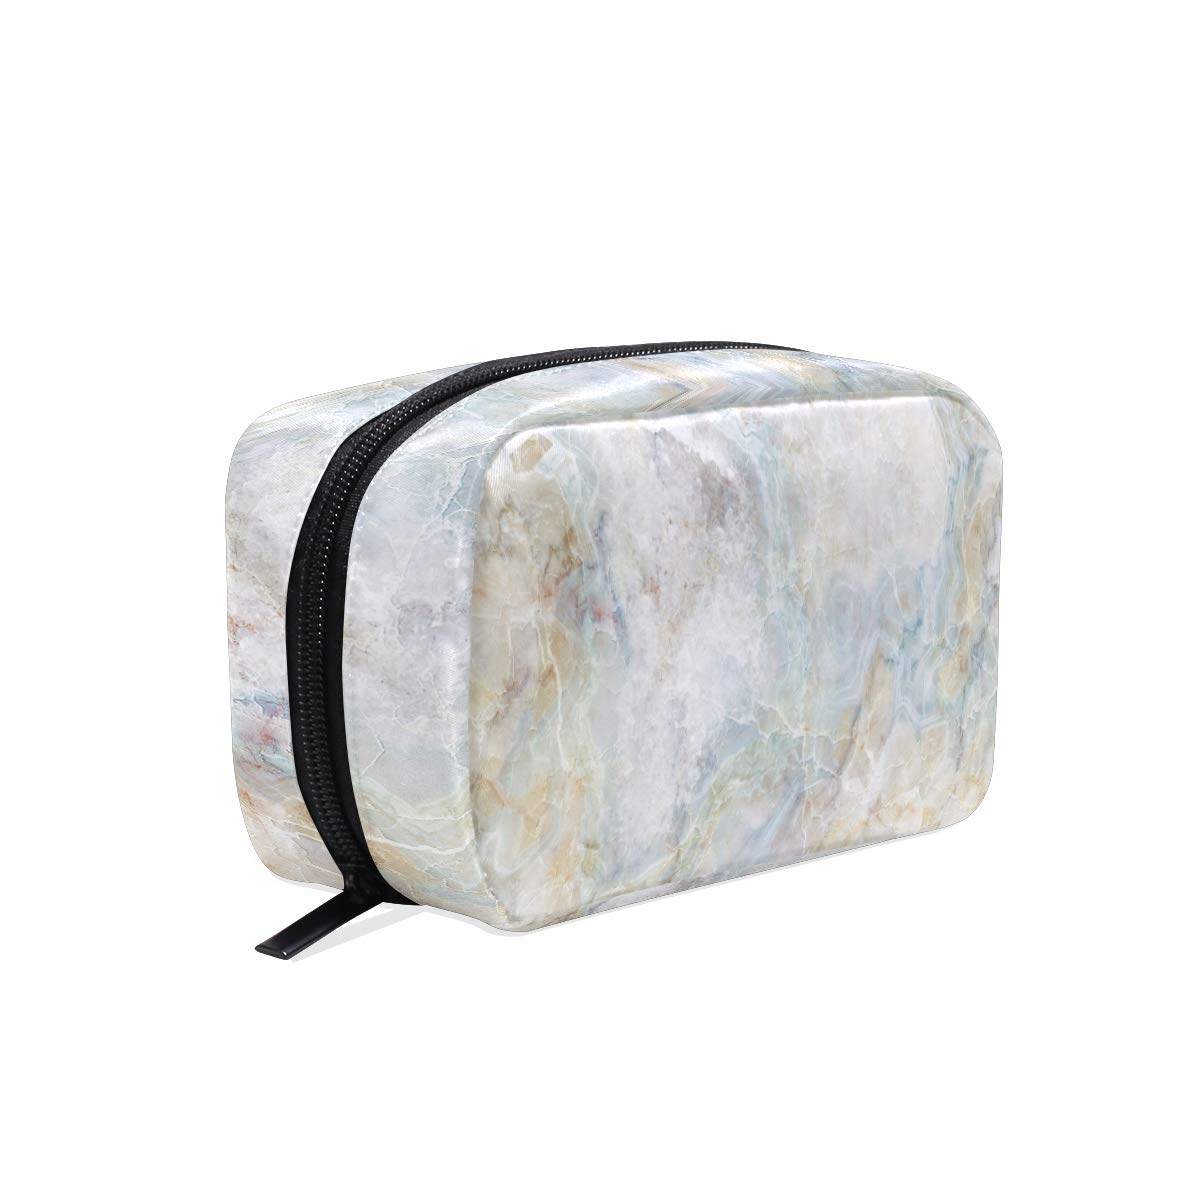 ALAZA Marble Stone Makeup Cosmetic Portable Pouch Bag Organizer Capacity Storage Bag Gift for Women Girls